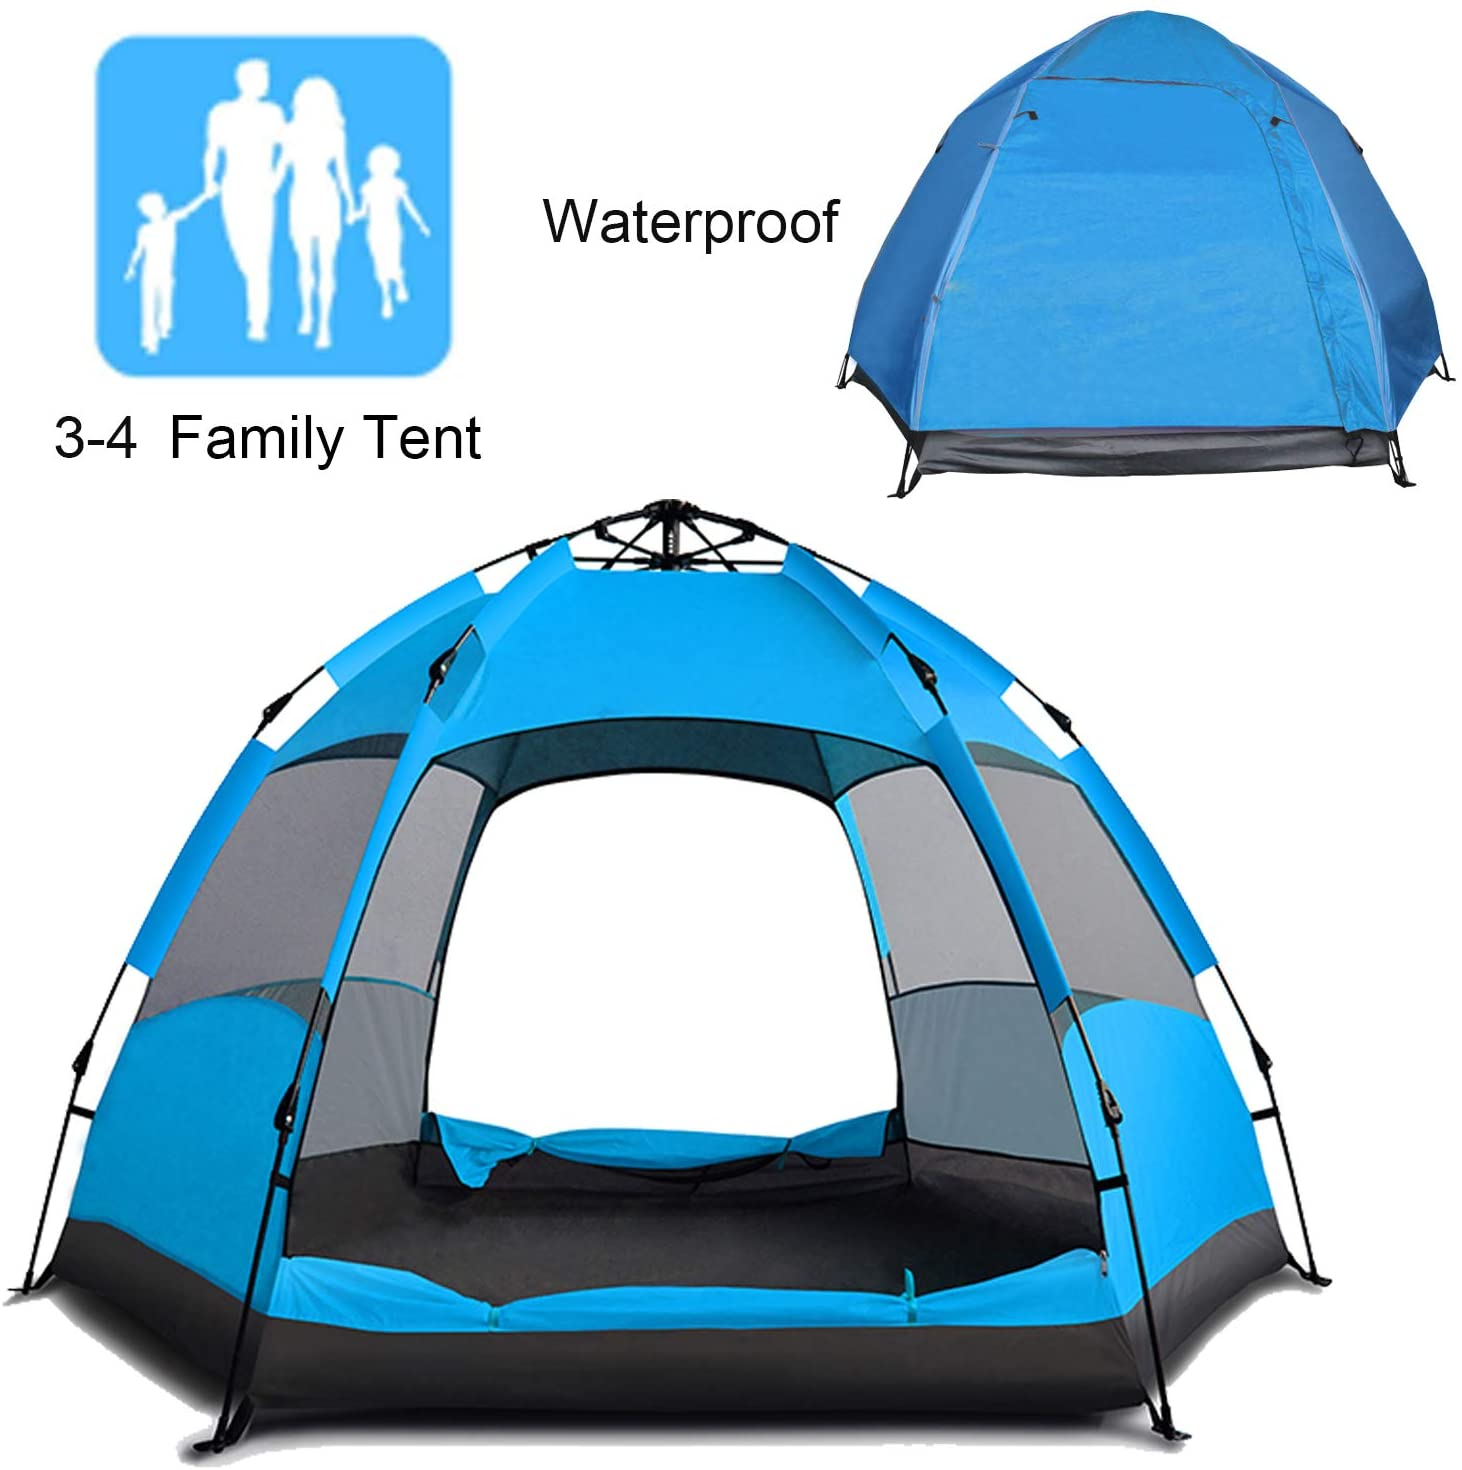 Best Waterproof Tents for Camping 2020